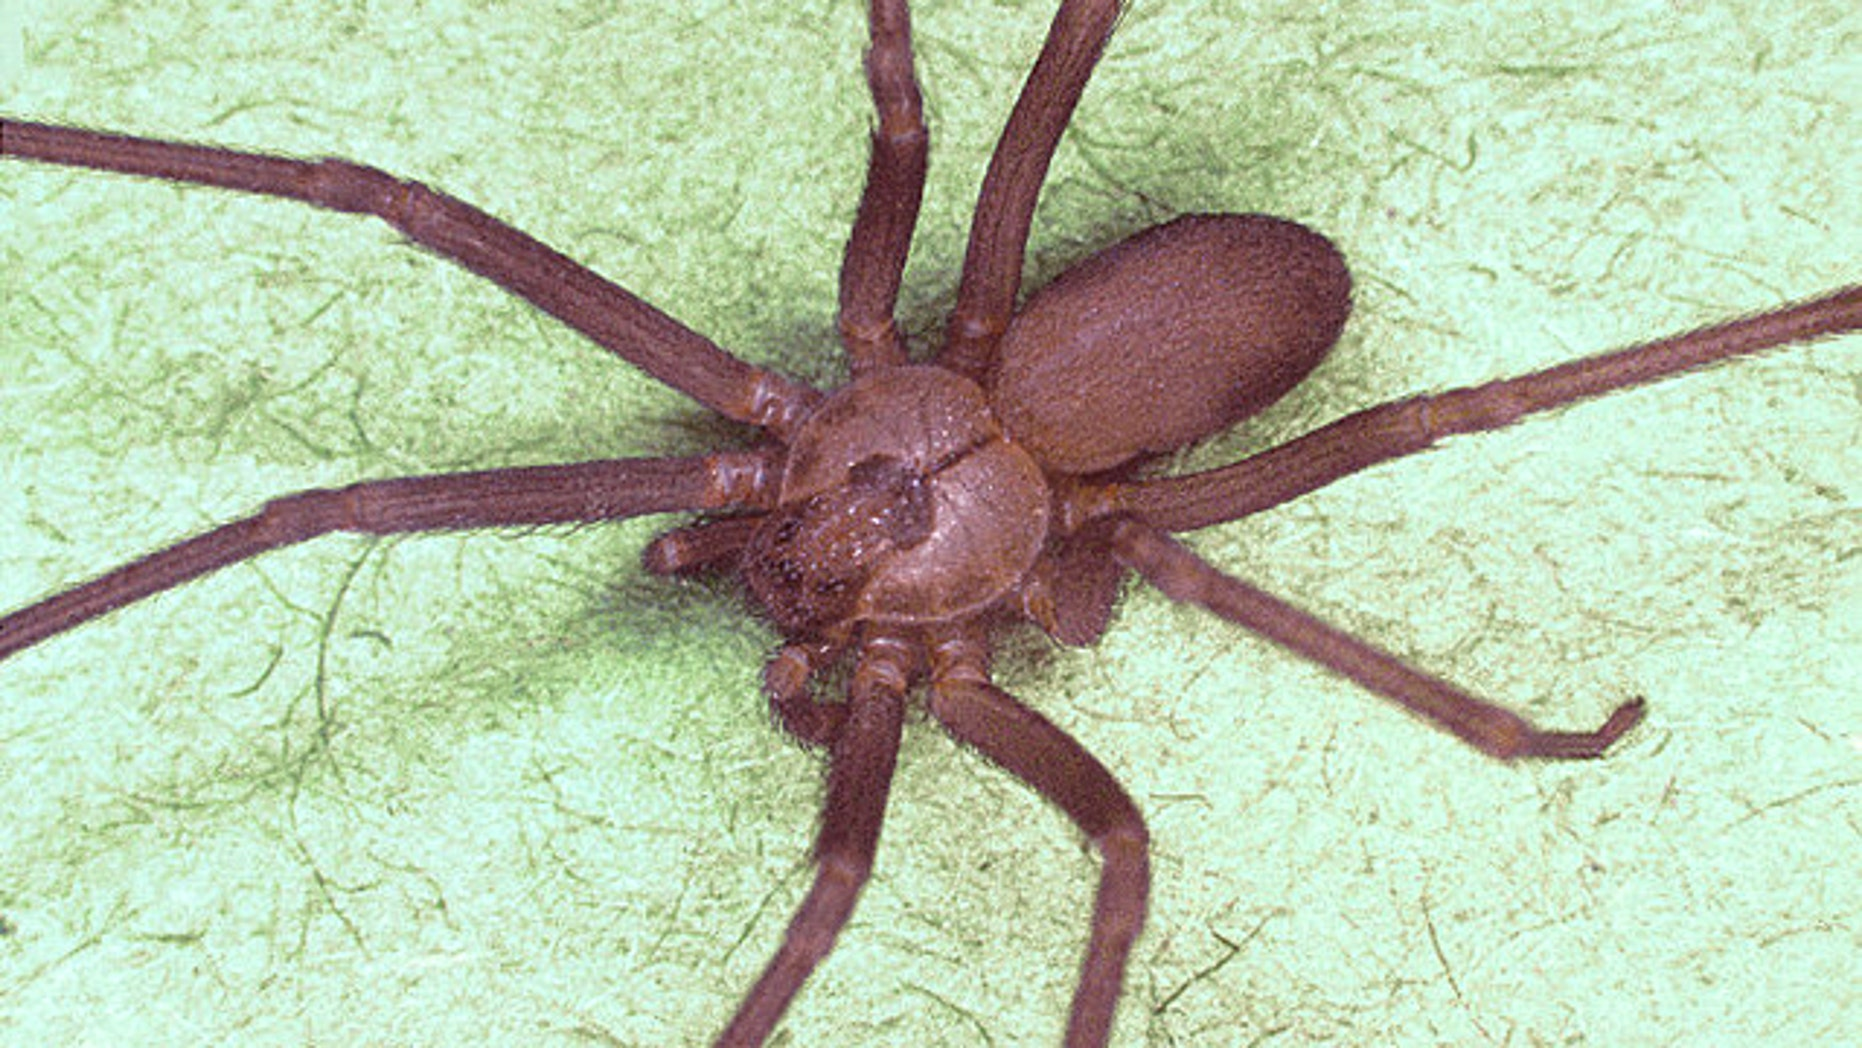 A brown recluse spider, or Loxosceles reclusa, similar to the ones Gail Ingram found in her New York City apartment.